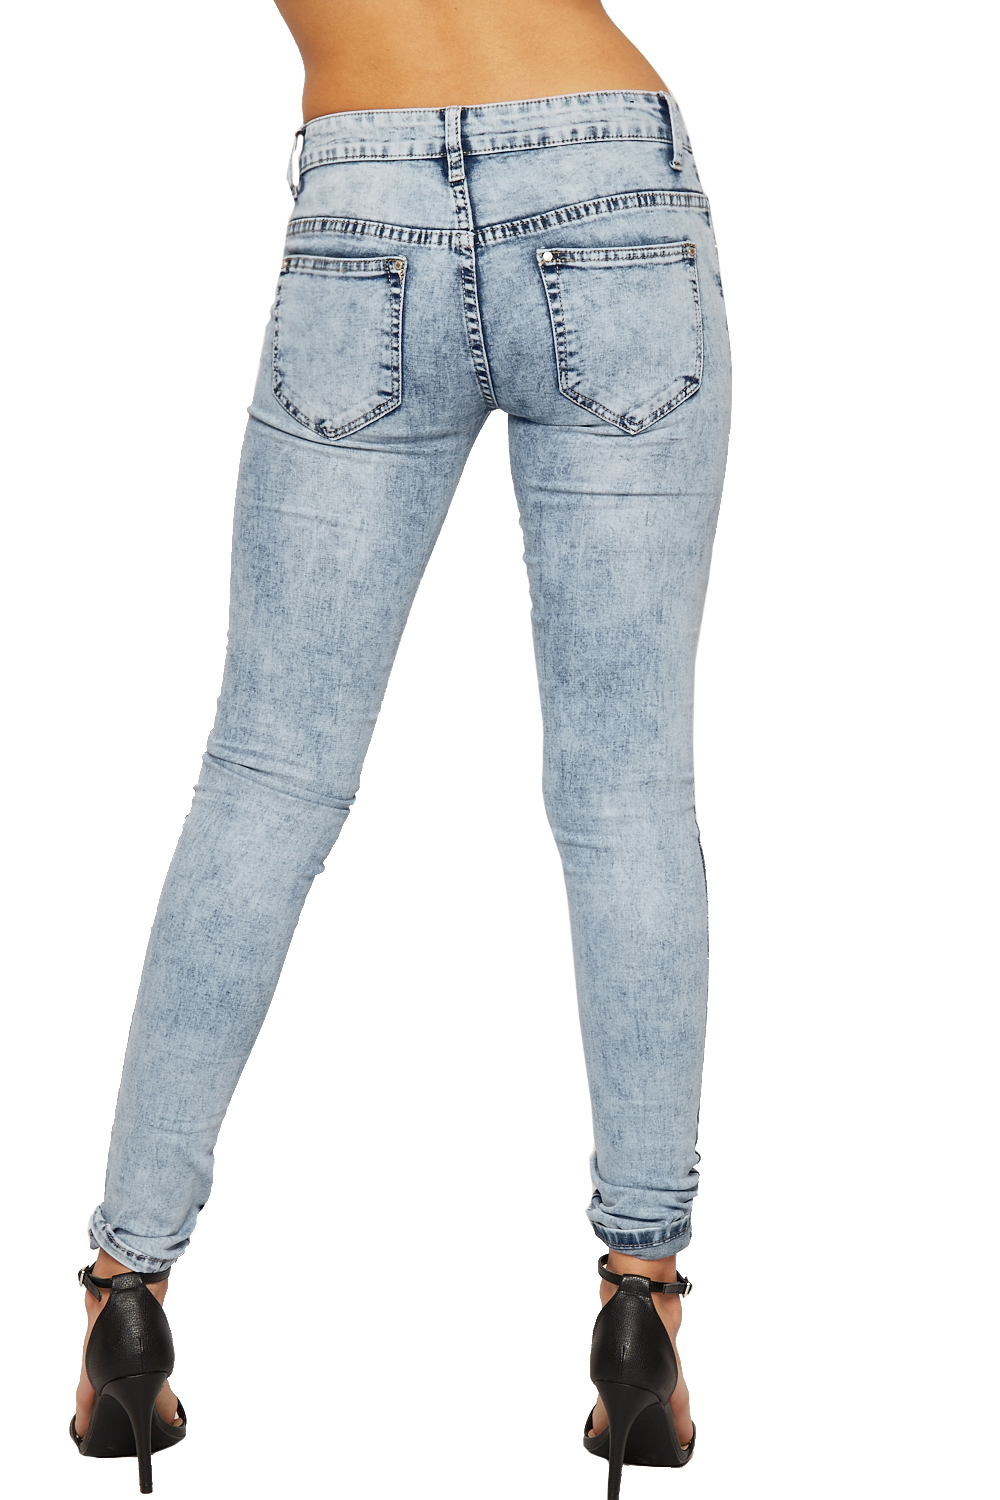 Wearing ripped jeans is a fine art, really. Done right, they look fashioned forward and cool—but one wrong tear and you're on your way to looking like Donnie Wahlberg during the New Kids on.